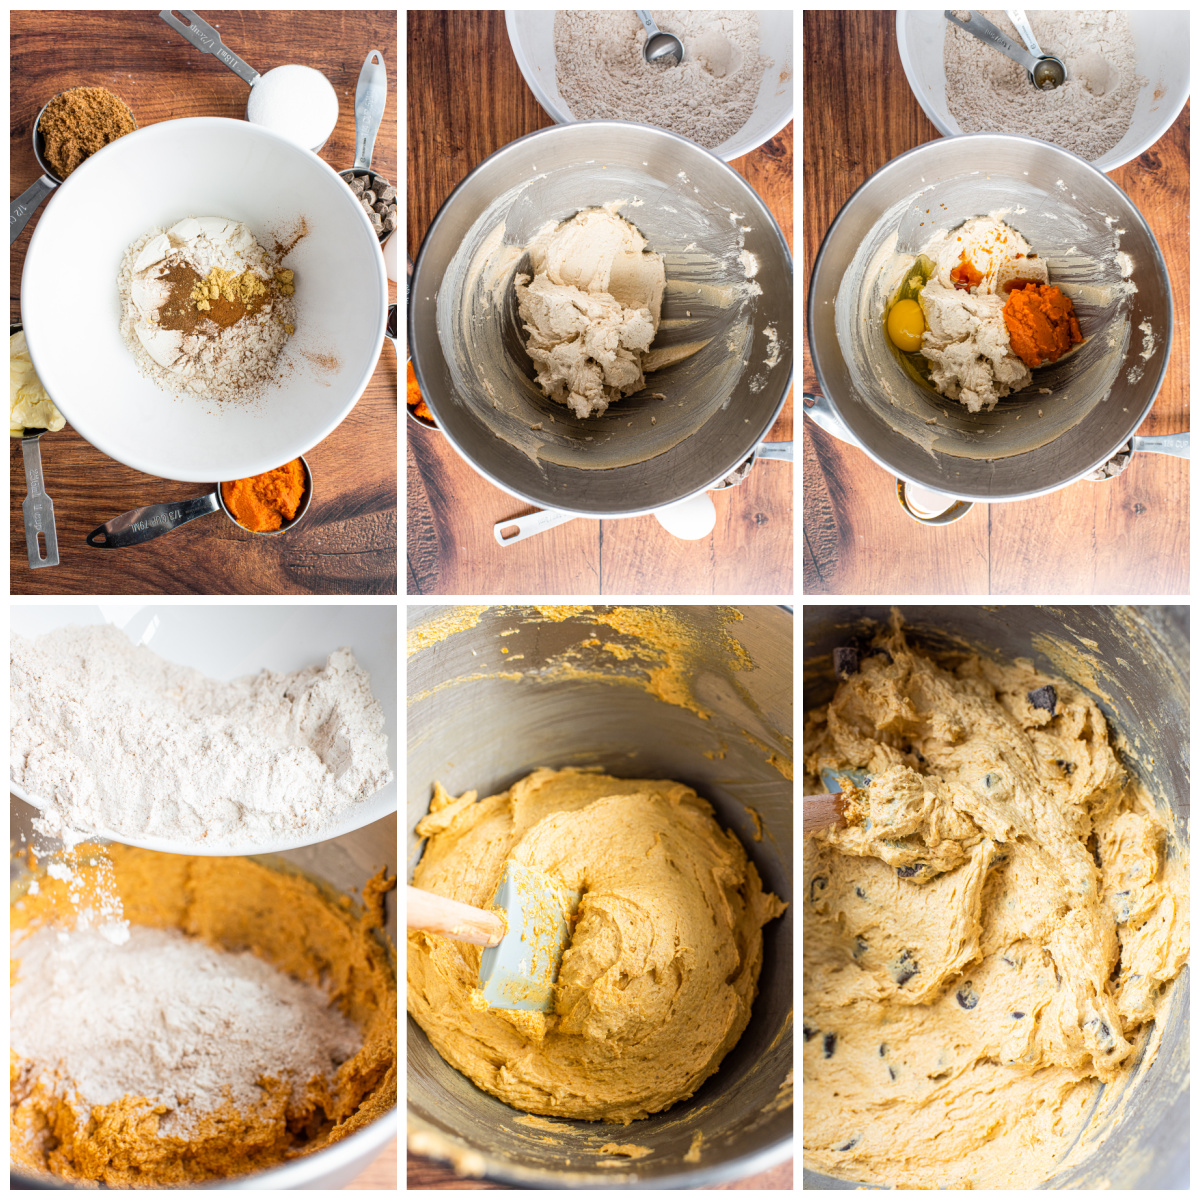 Step by step photos to make a Pumpkin Chocolate Chip Cookie Recipe.